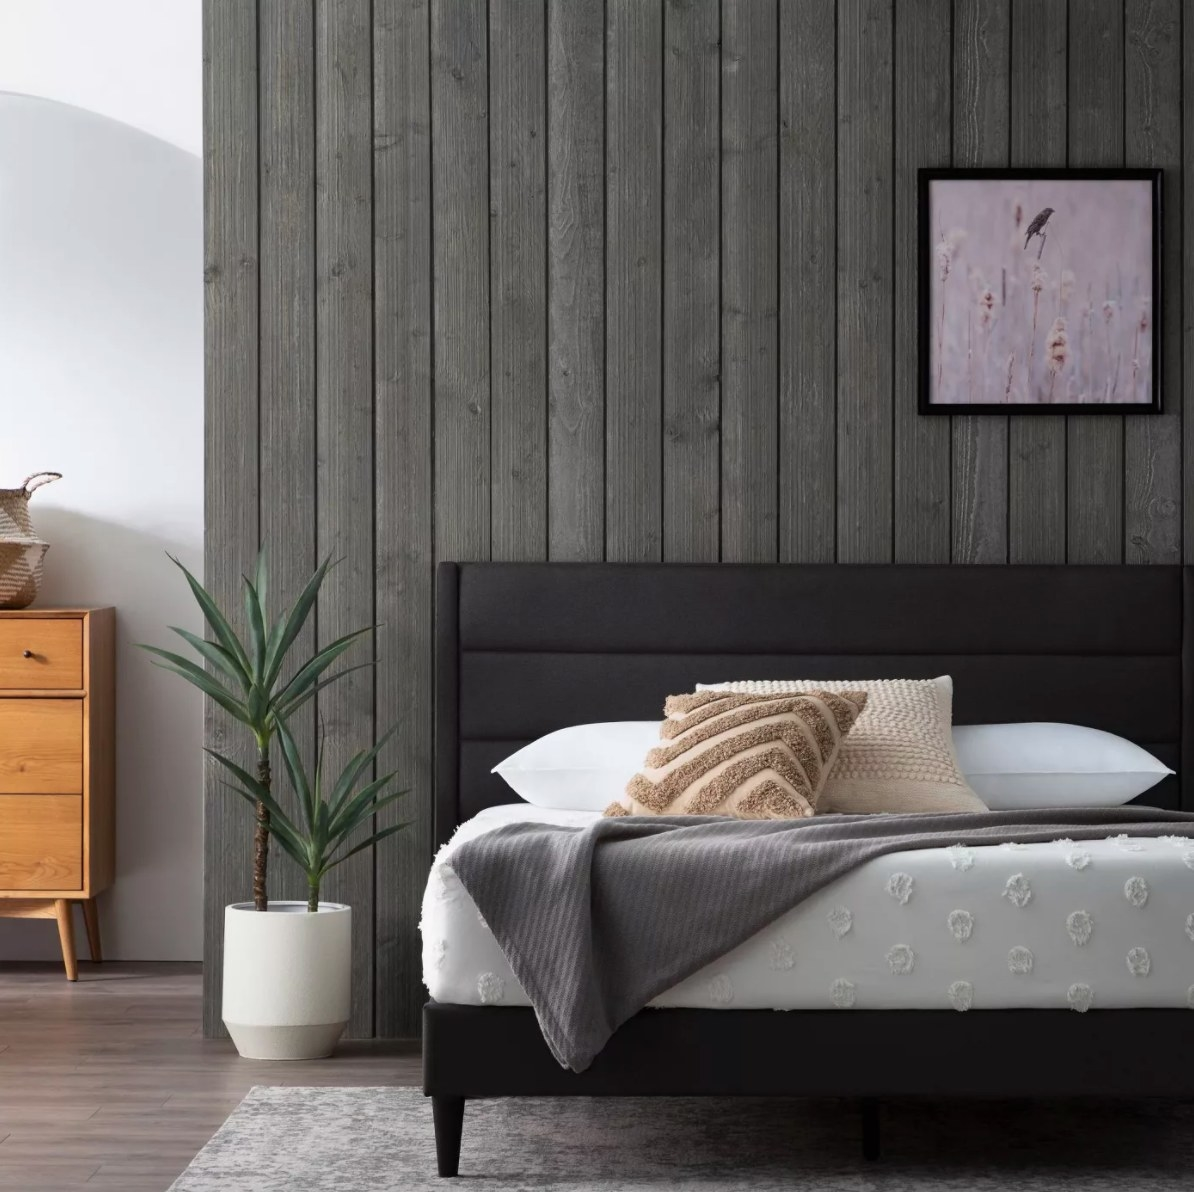 The upholstered bed in charcoal with accent pillows and a blanket drapped across